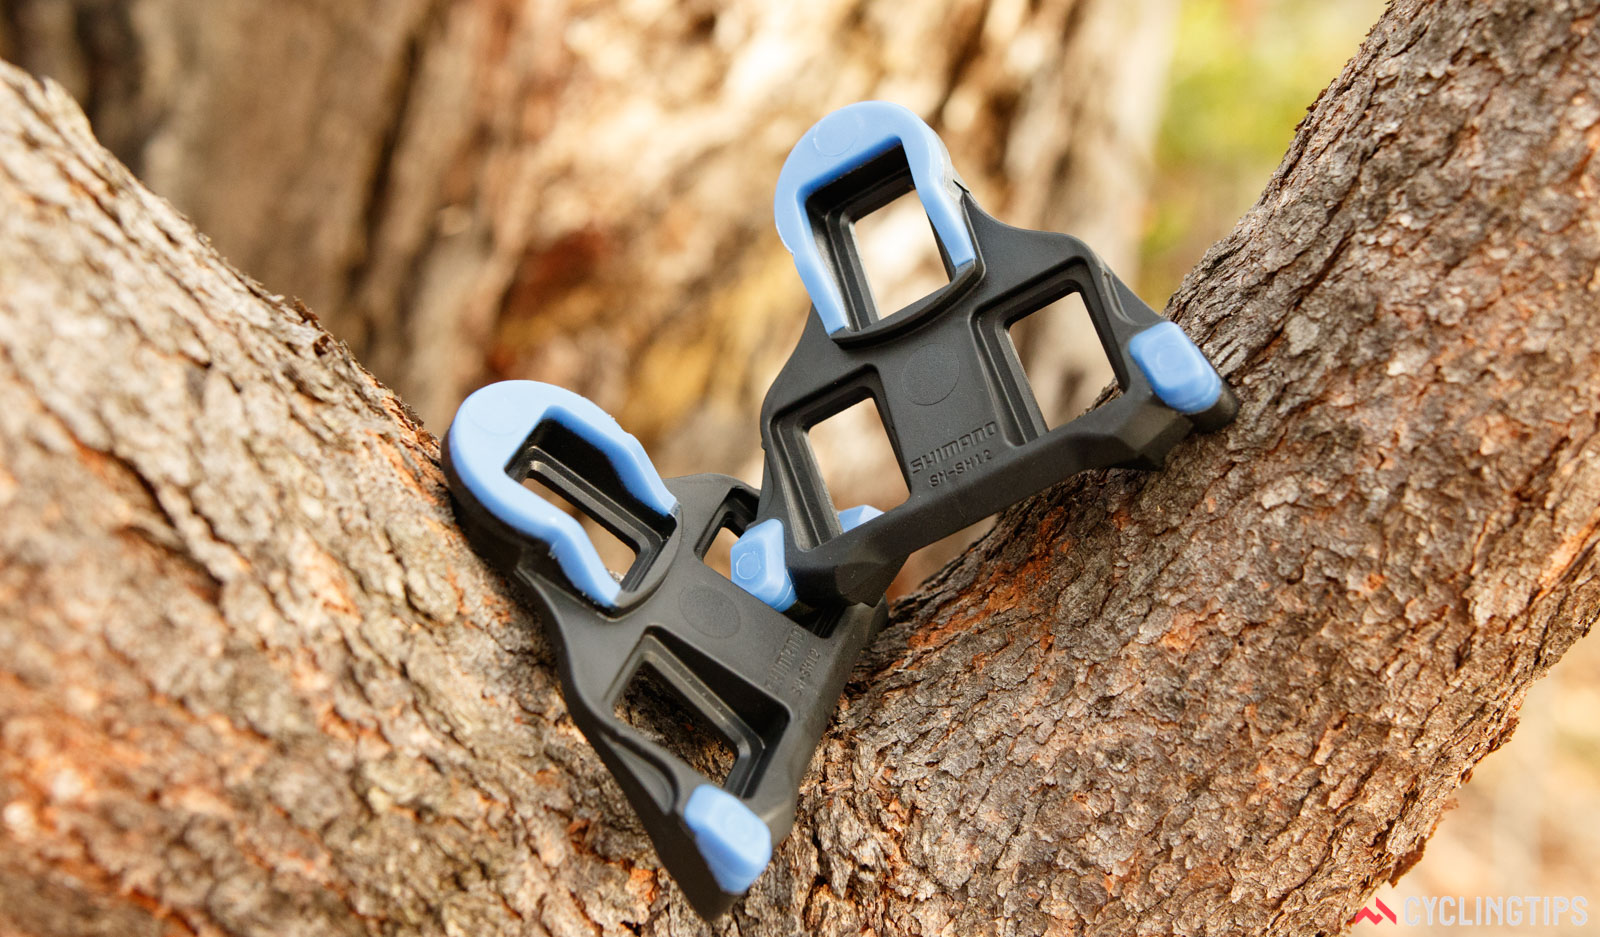 Shimano Dura-Ace R9100 pedals provided cleats